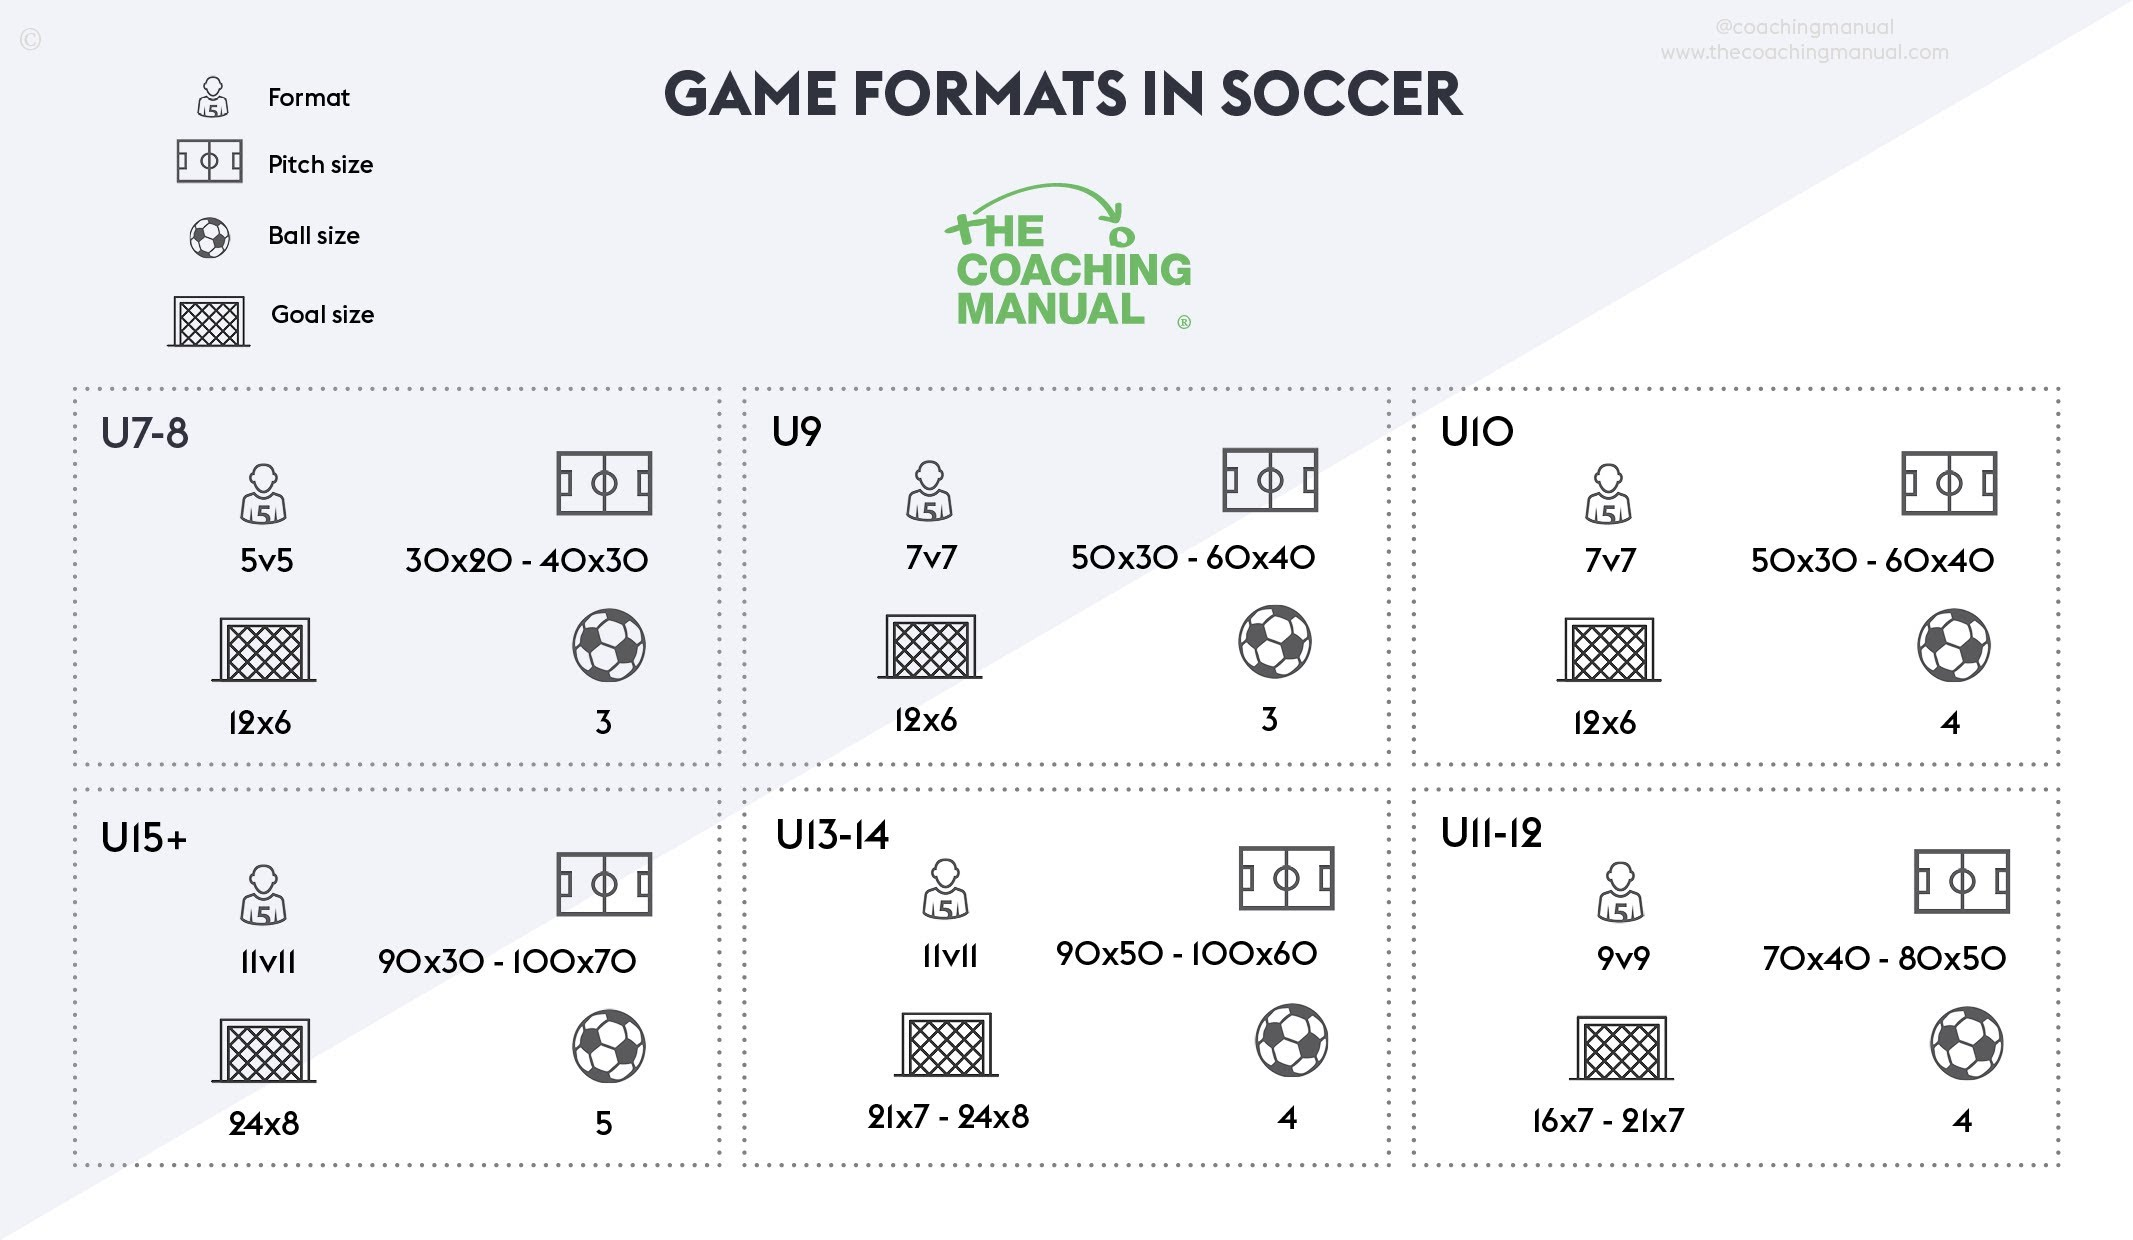 Game Formats in Soccer Infographic - The Coaching Manual